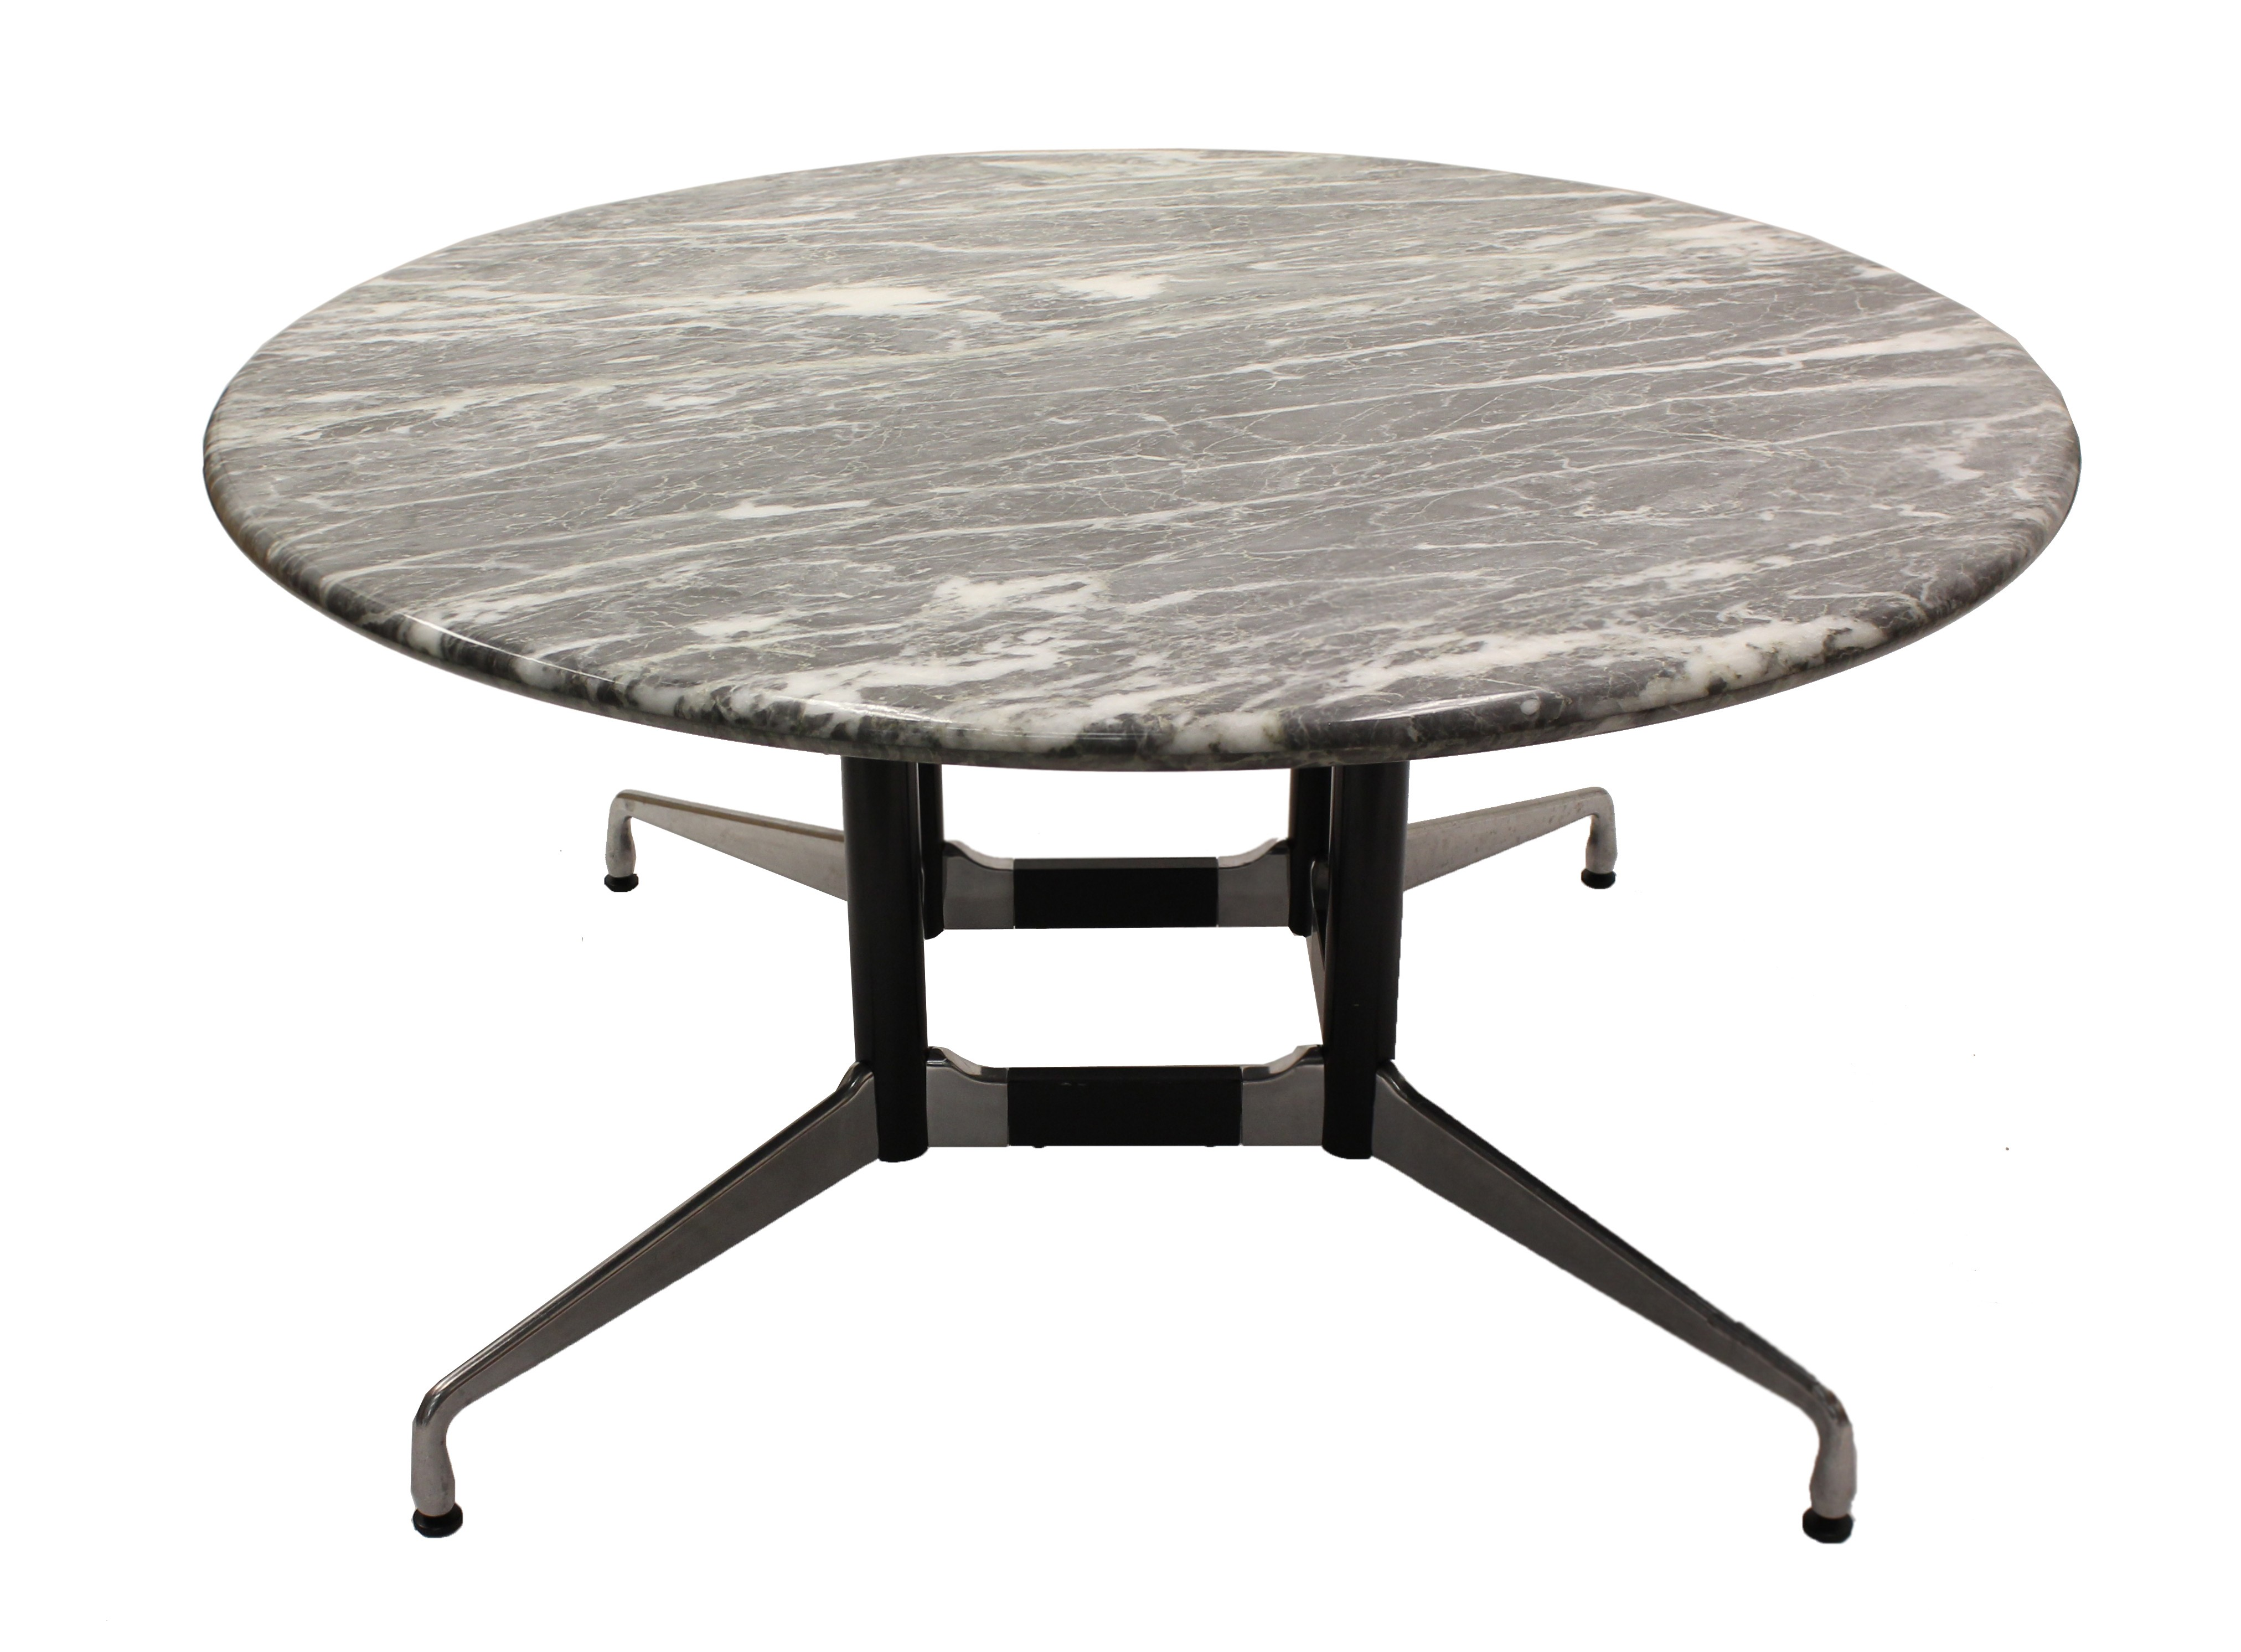 Herman Miller Eames Round Dining Table Round Designs - Eames oval conference table